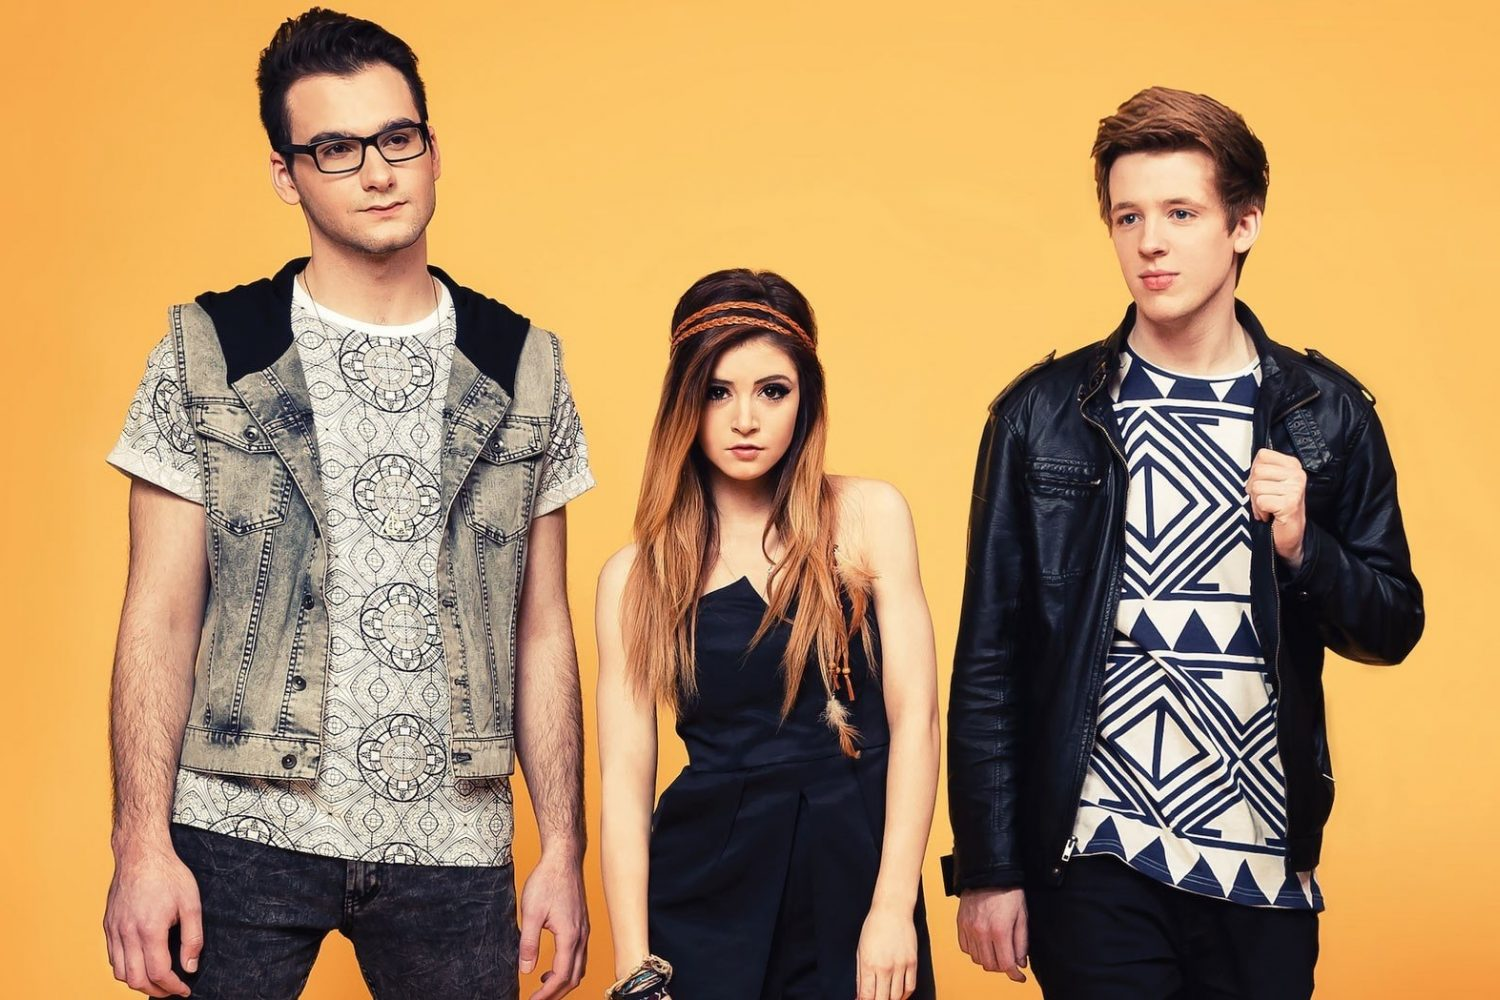 Big in 2016: Against The Current